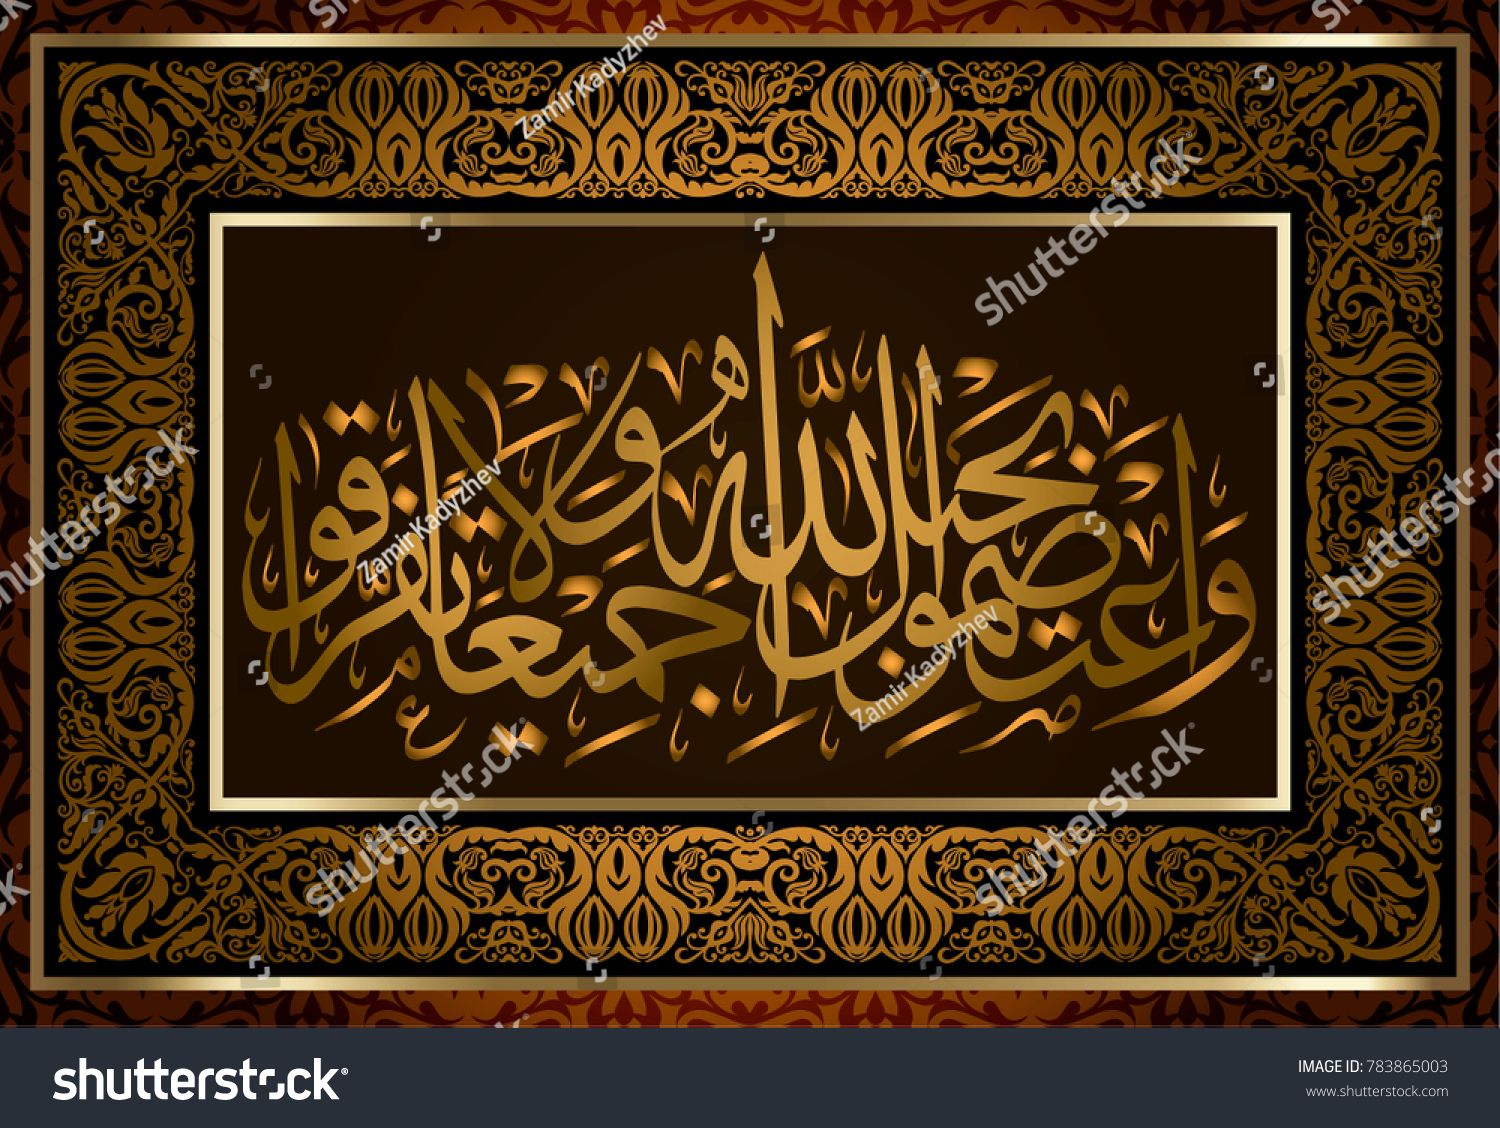 Splendid islamic wall art uk canvas arabic calligraphy frames